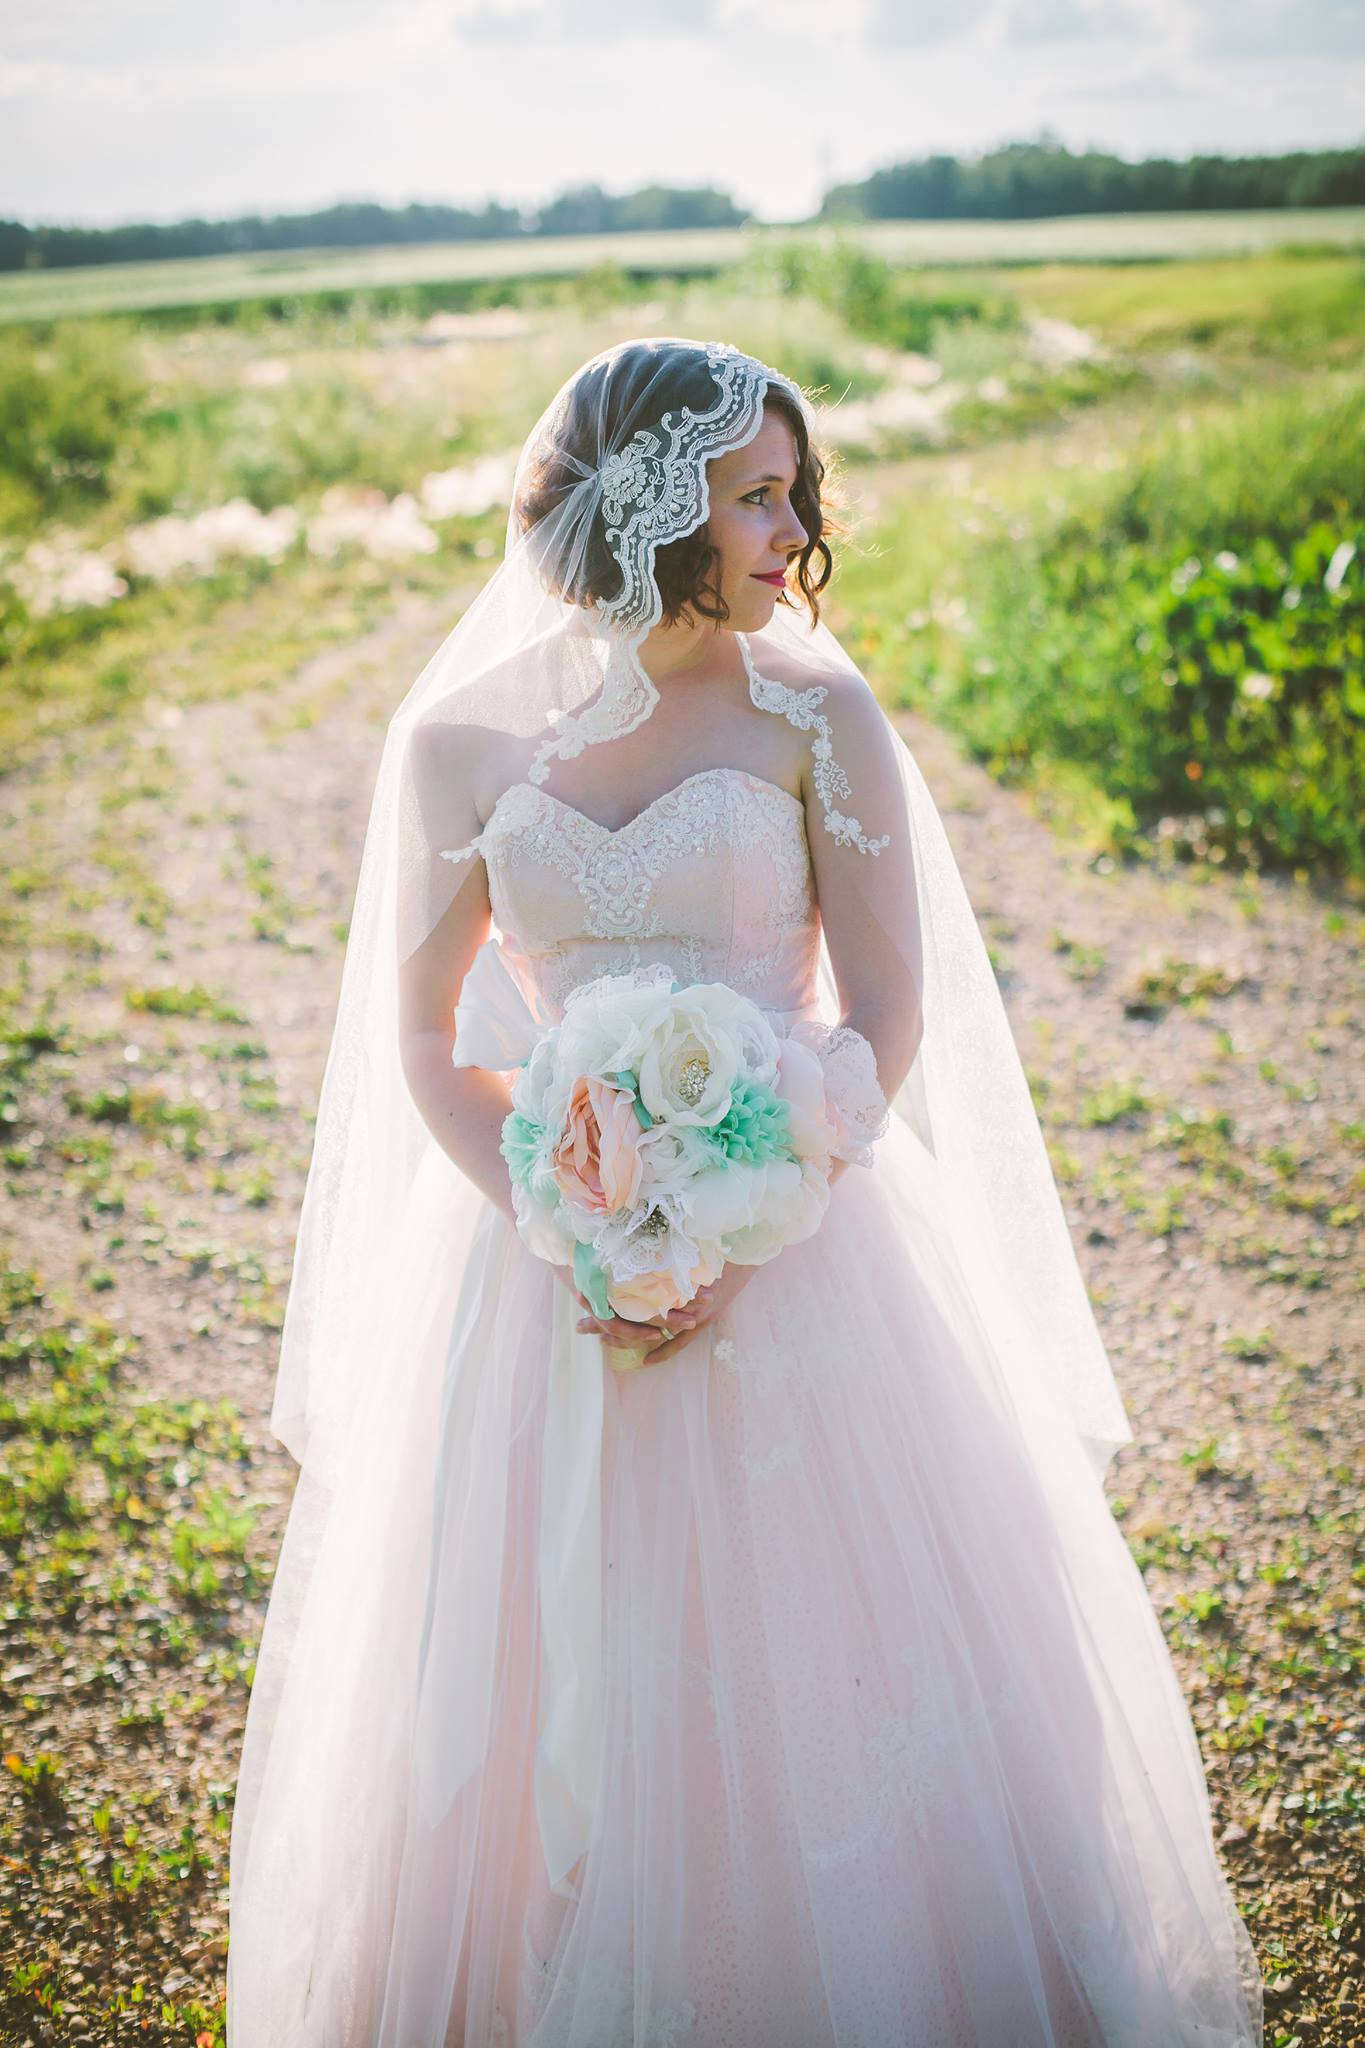 How to make a DIY juliet cap veil